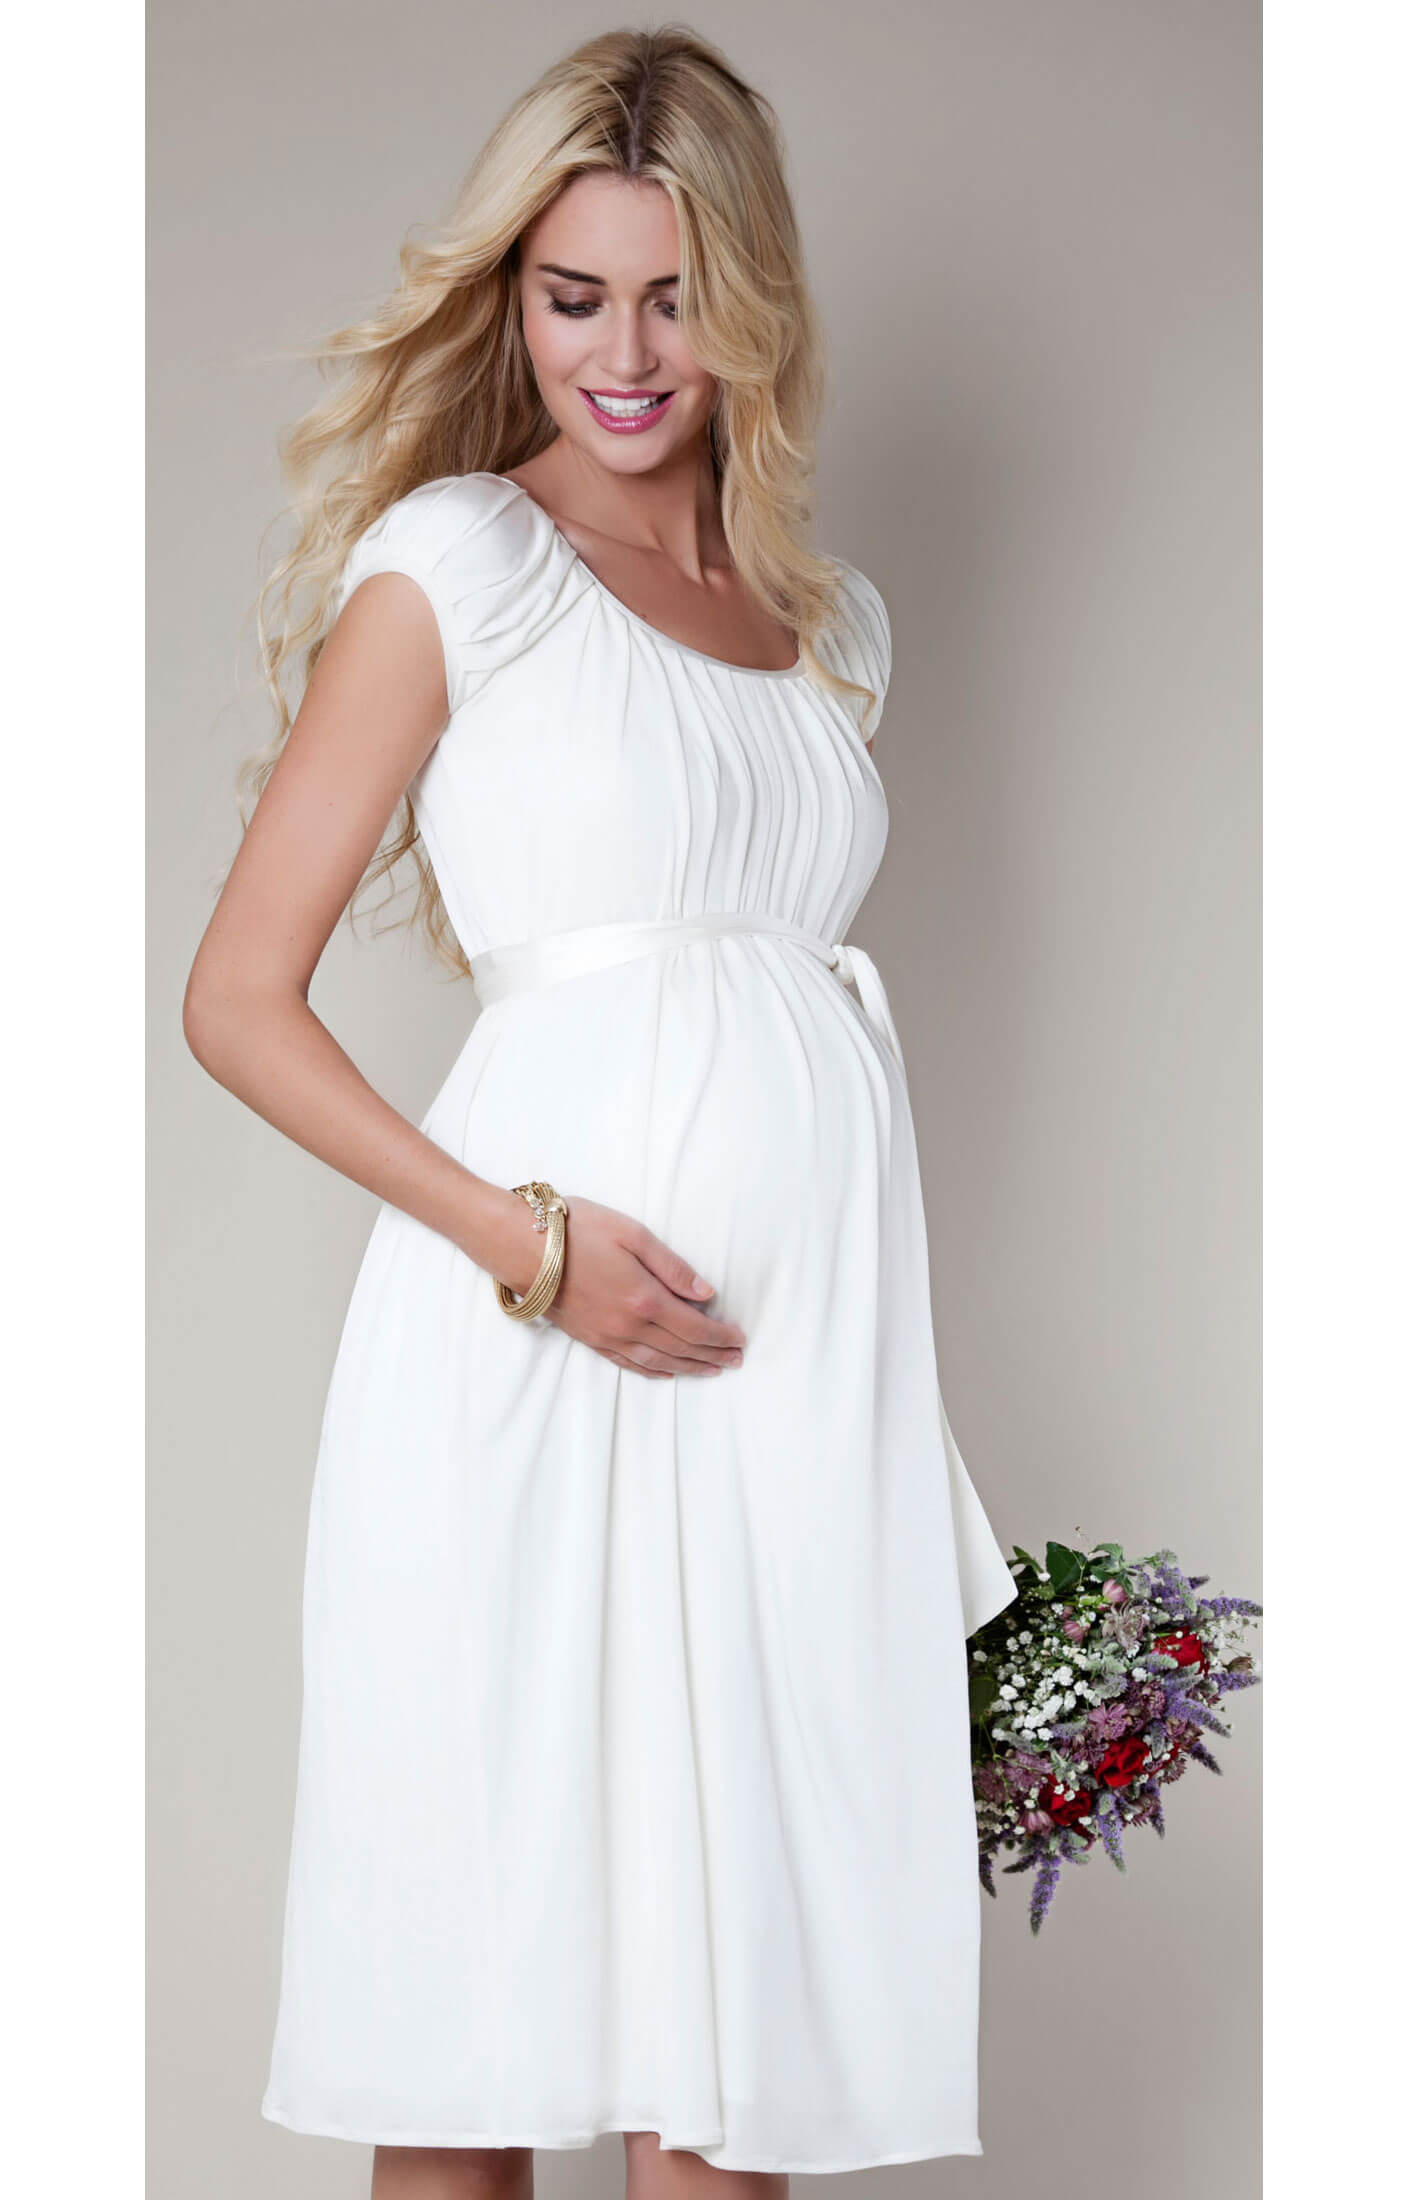 Dress lengths range from comfortably short and sweet to long and luxurious maxi styles. Whether it's warm or cold outside, you'll find maternity dresses suitable for any time of year. Layer warm stockings underneath special occasion maternity dresses when heading to a winter get-together.